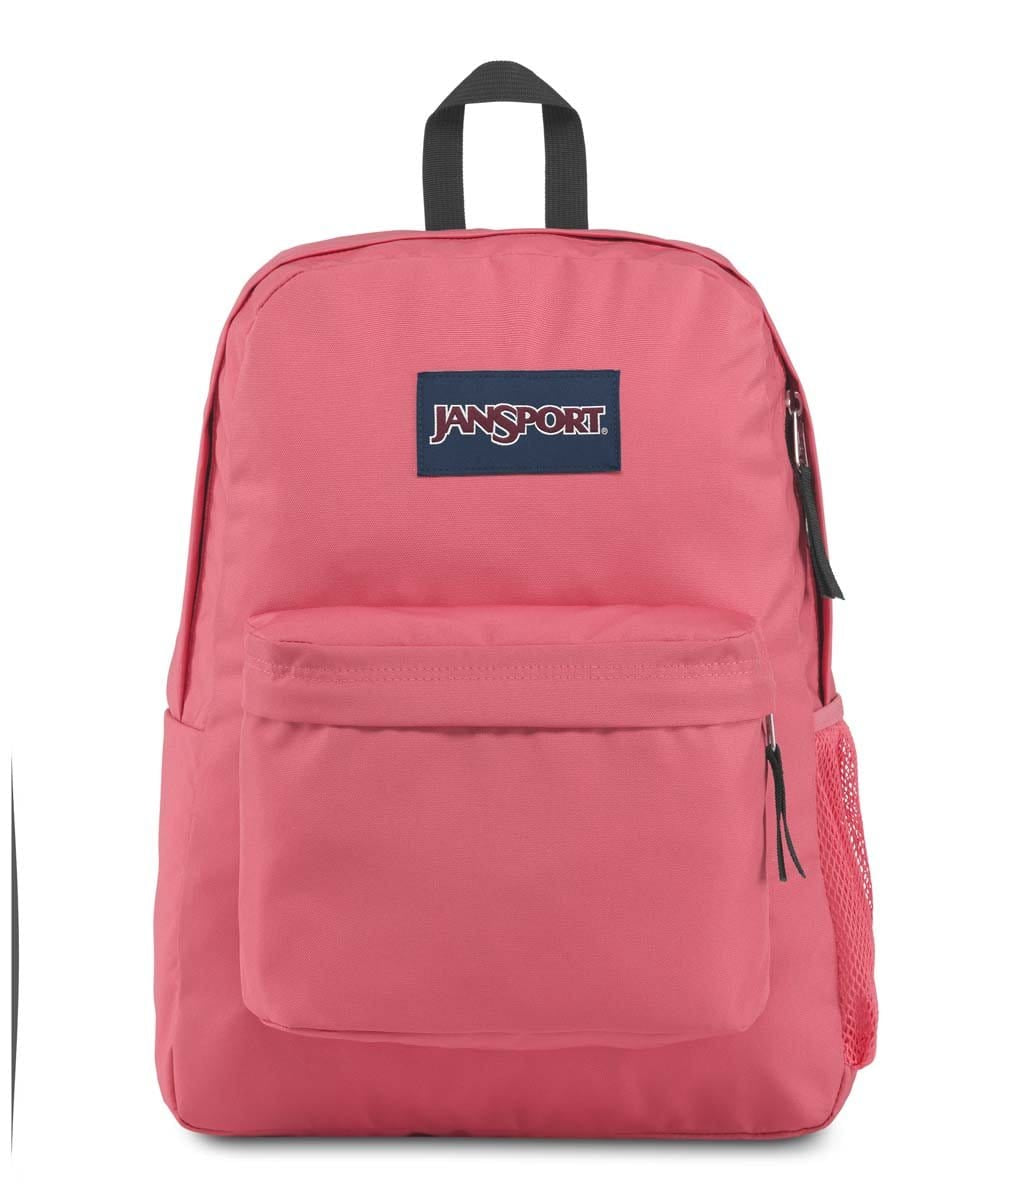 JanSport Hyperbreak Backpack - Luggage City